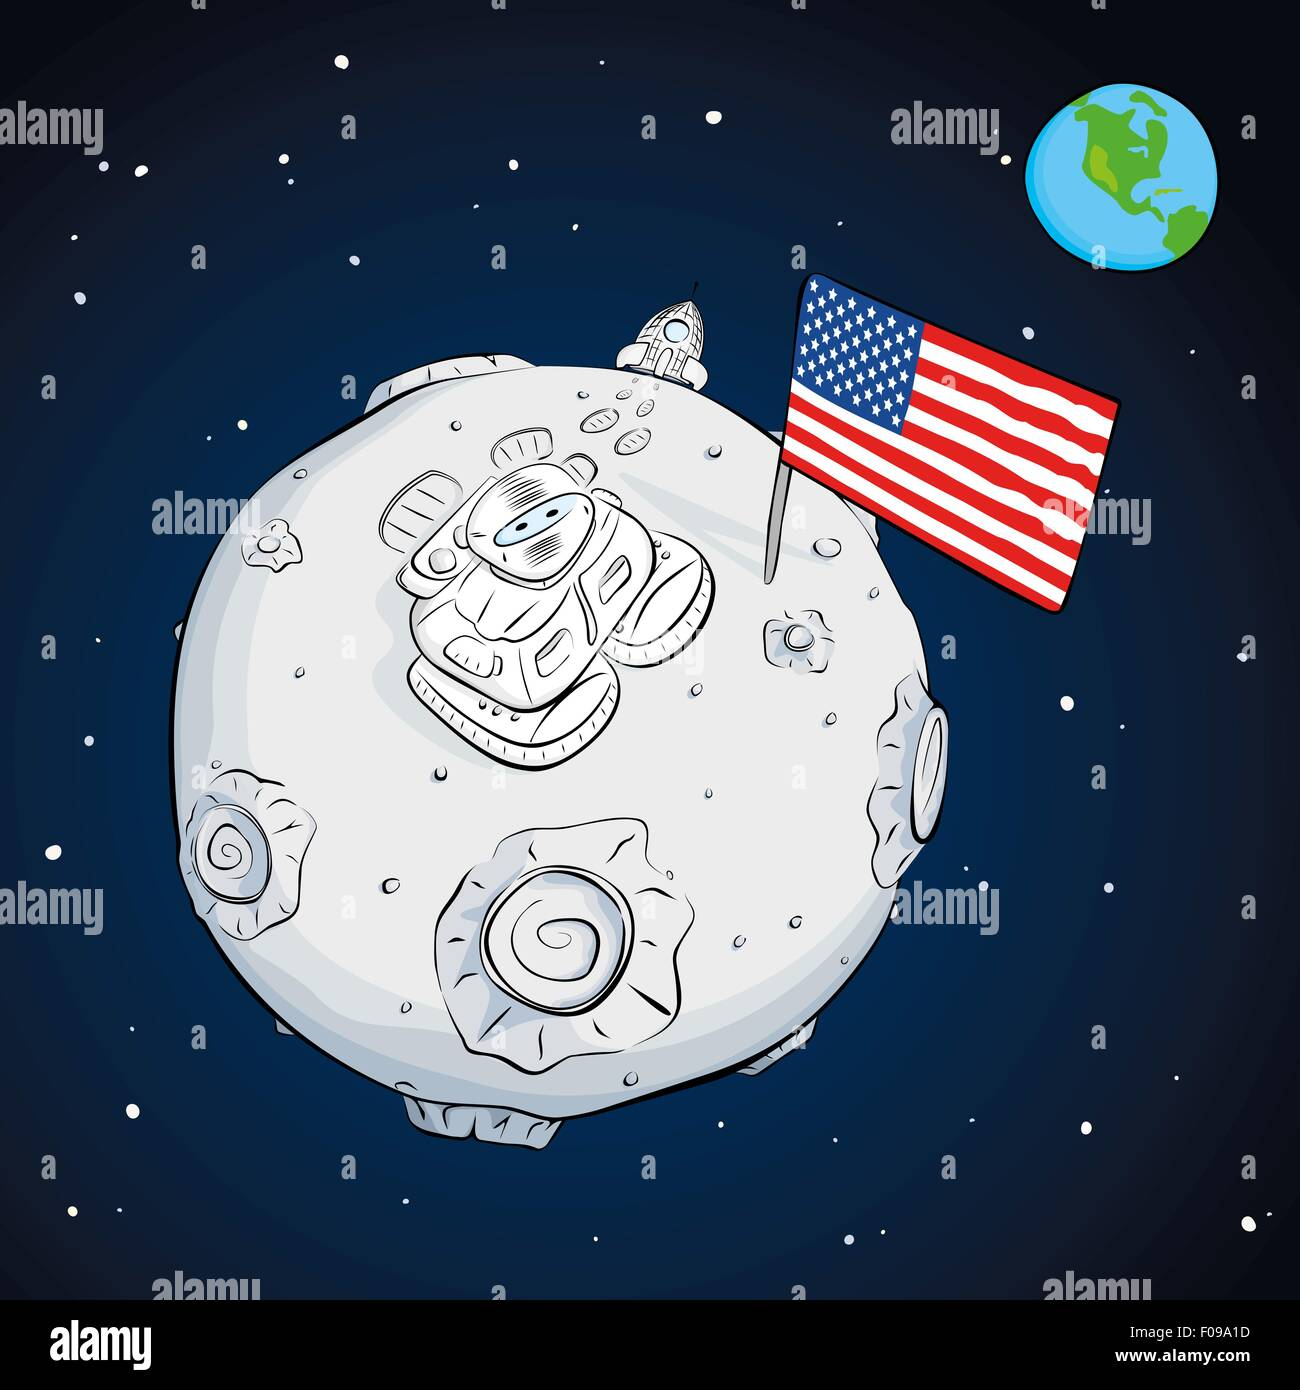 astronaut with flag USA on the moon loocking up - Stock Vector